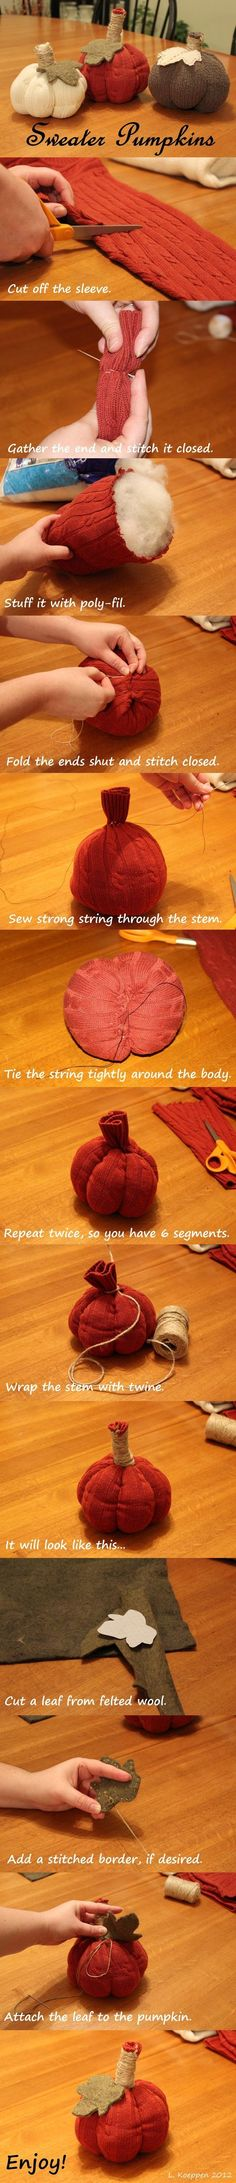 Easy No Sew Pumpkins from Old Sweaters.                                                                                                                                                                                 More